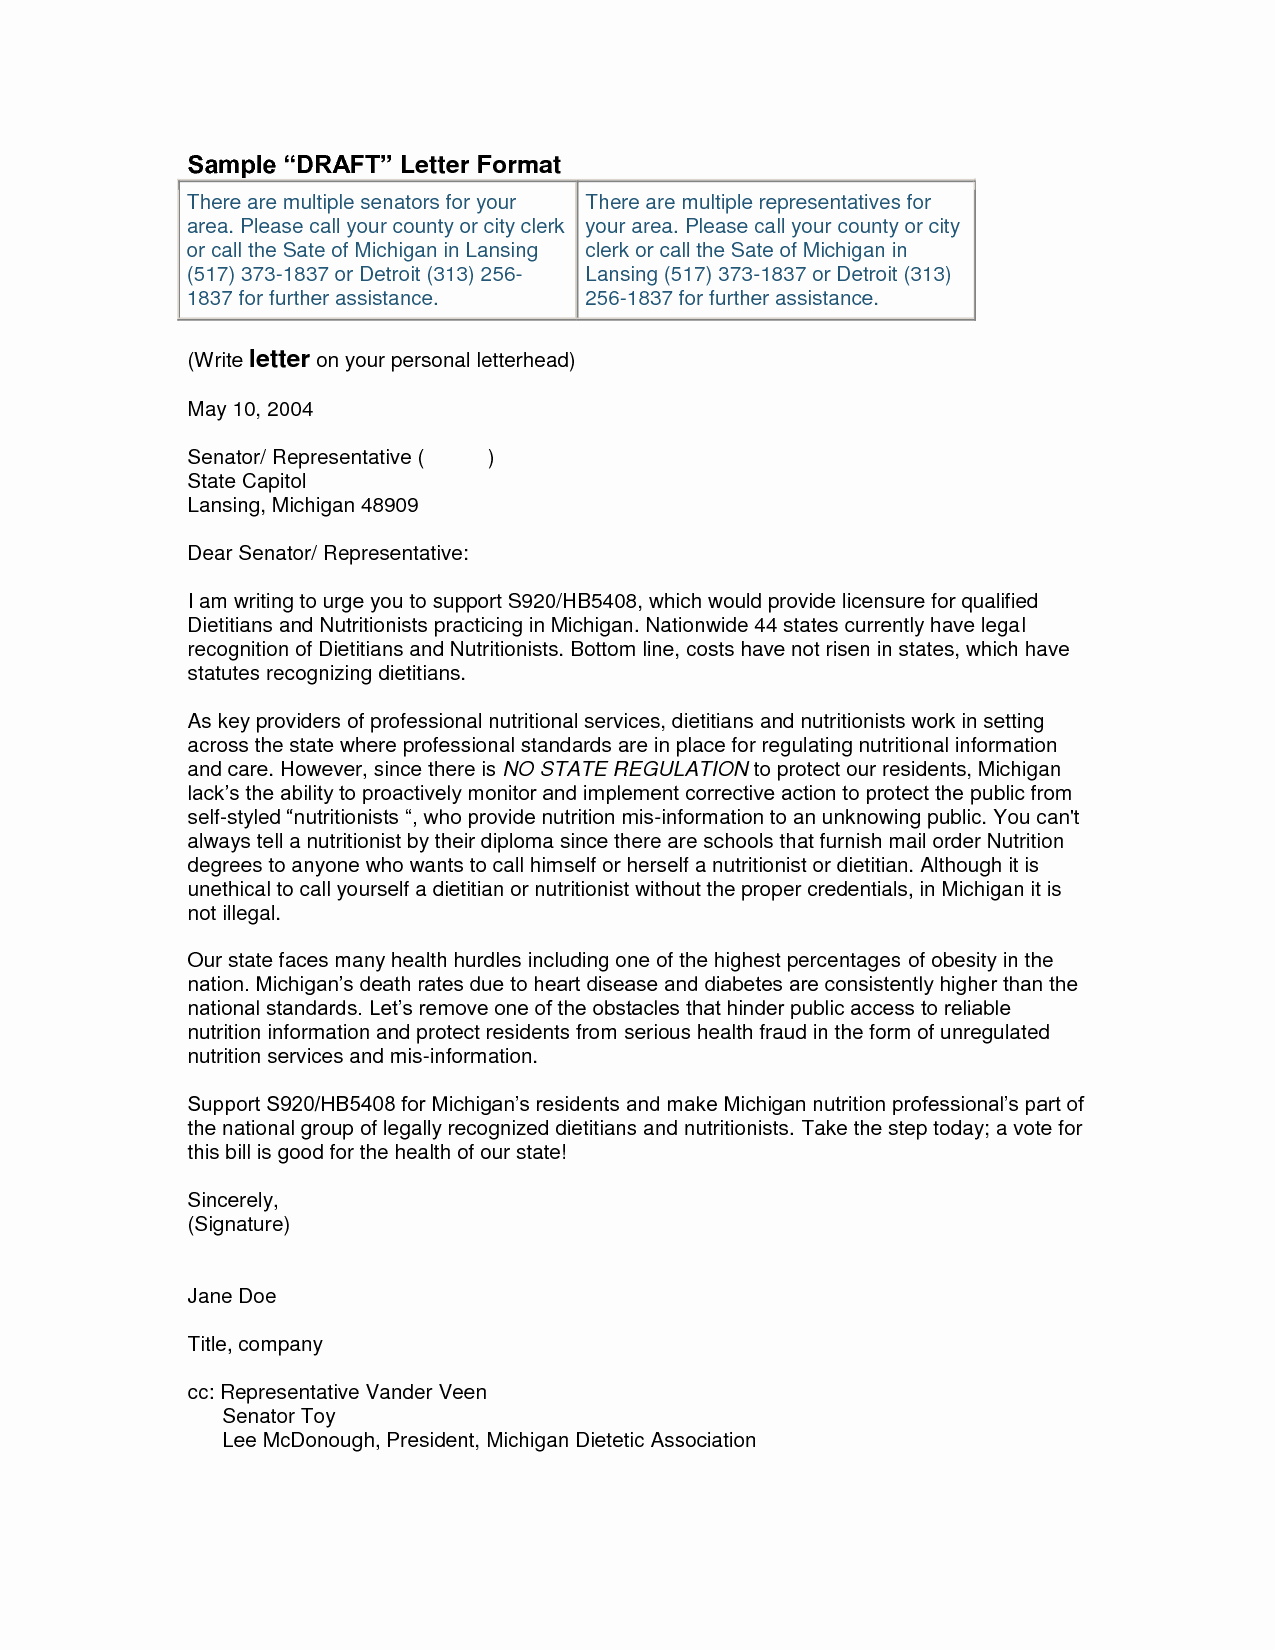 Letter format Carbon Copy Awesome Sample Letter with Cc